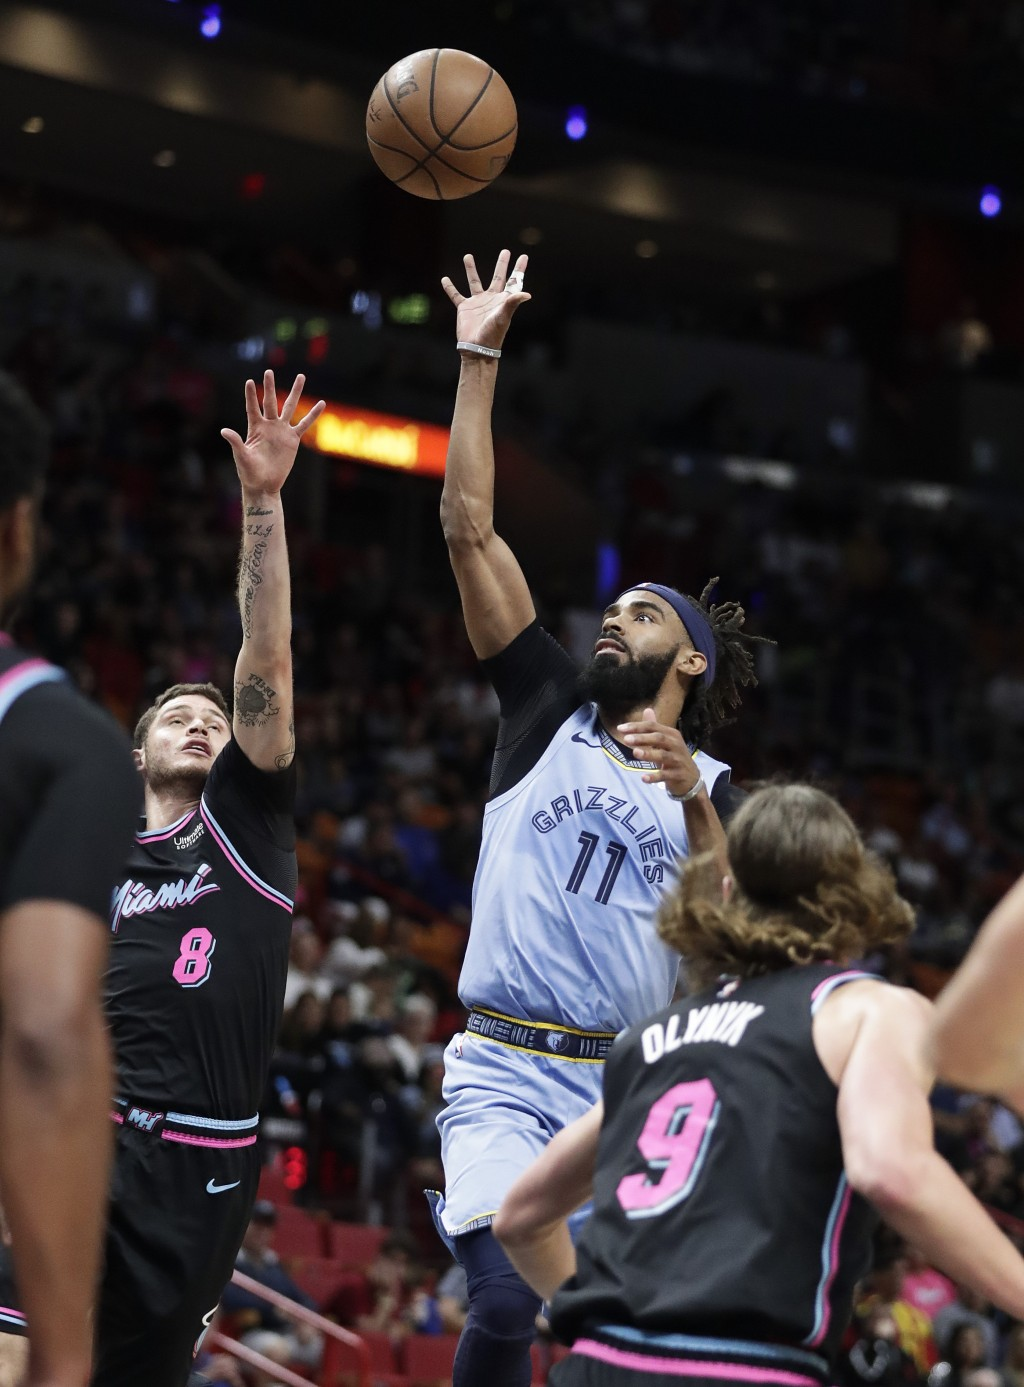 Memphis Grizzlies guard Mike Conley (11) shoots and scores against Miami Heat guard Tyler Johnson in the first half of an NBA basketball game on Satur